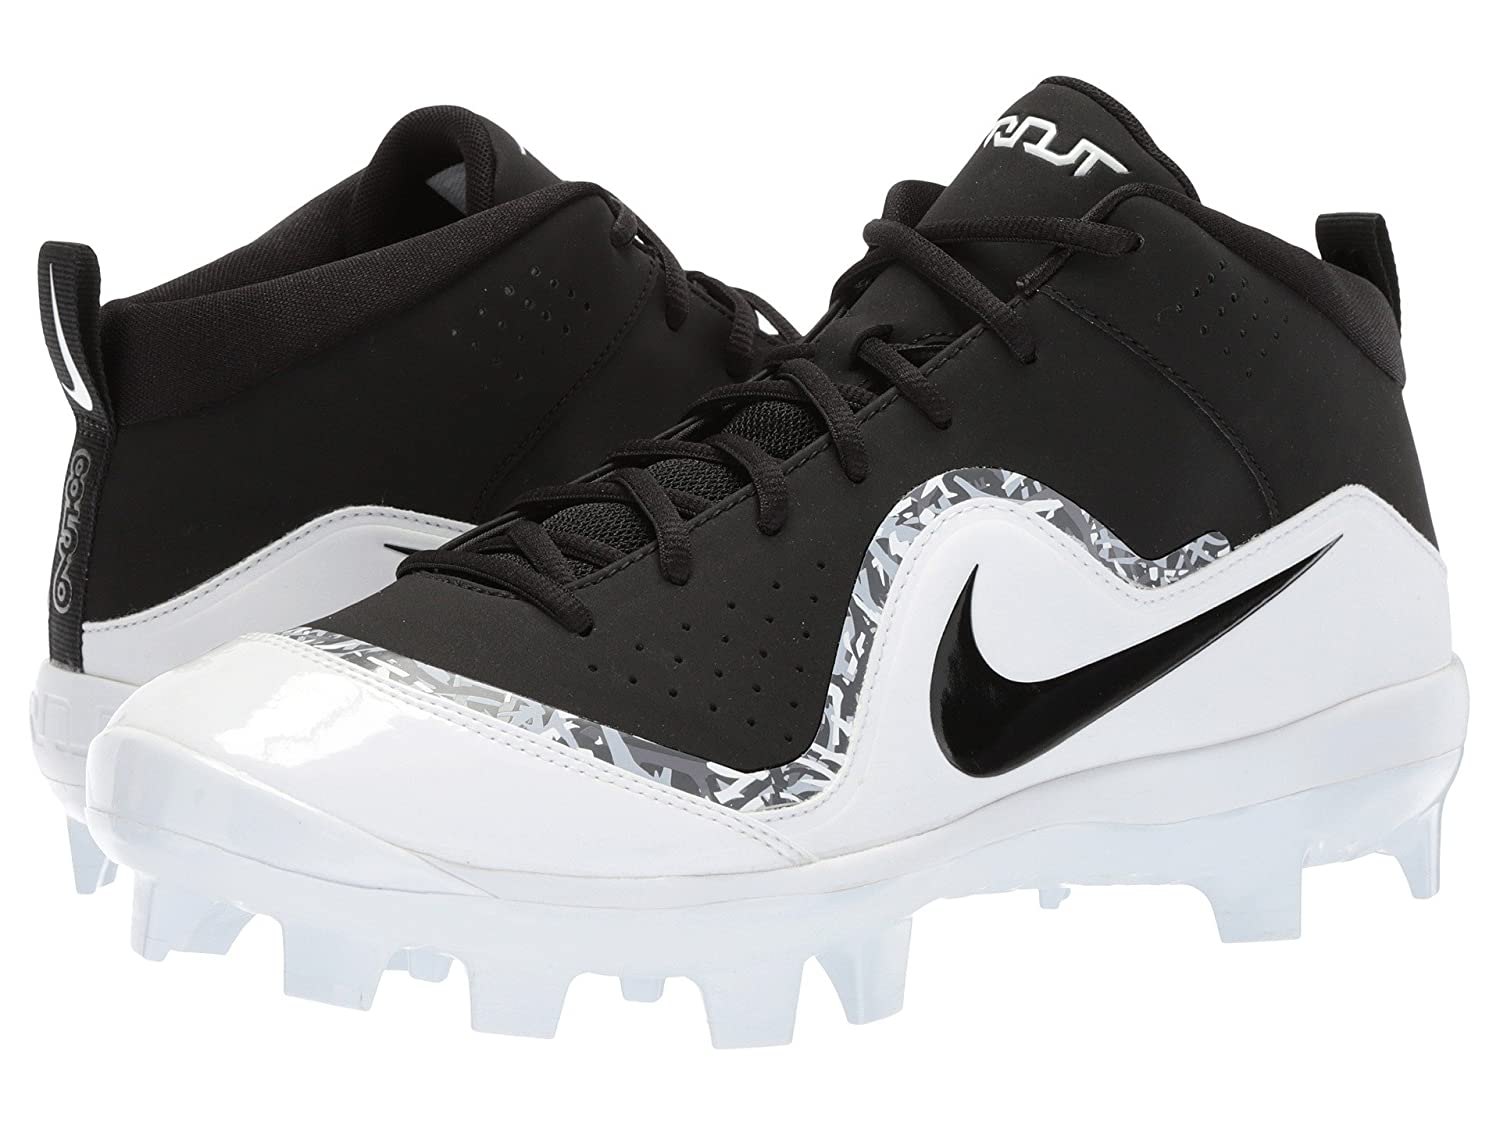 (ナイキ) NIKE メンズ野球ベースボールシューズ靴 Force Trout 4 Pro MCS Black/Black/White/Cool Grey 13 (31cm) D Medium B078Q3KGSP